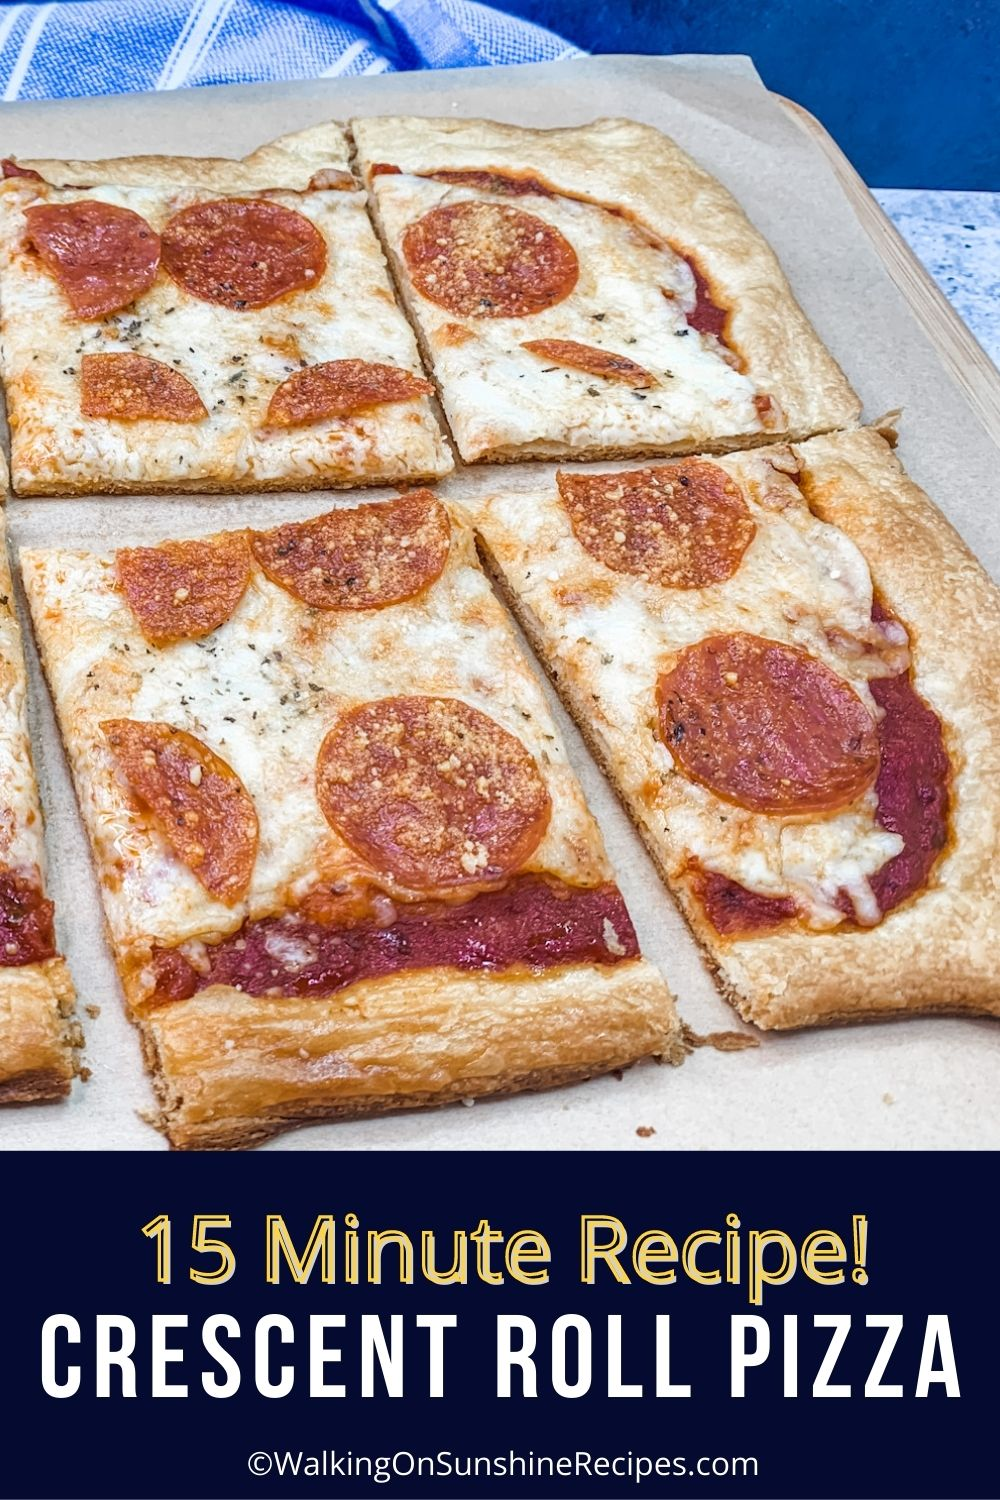 WOS Crescent Roll Pizza Pin Template5